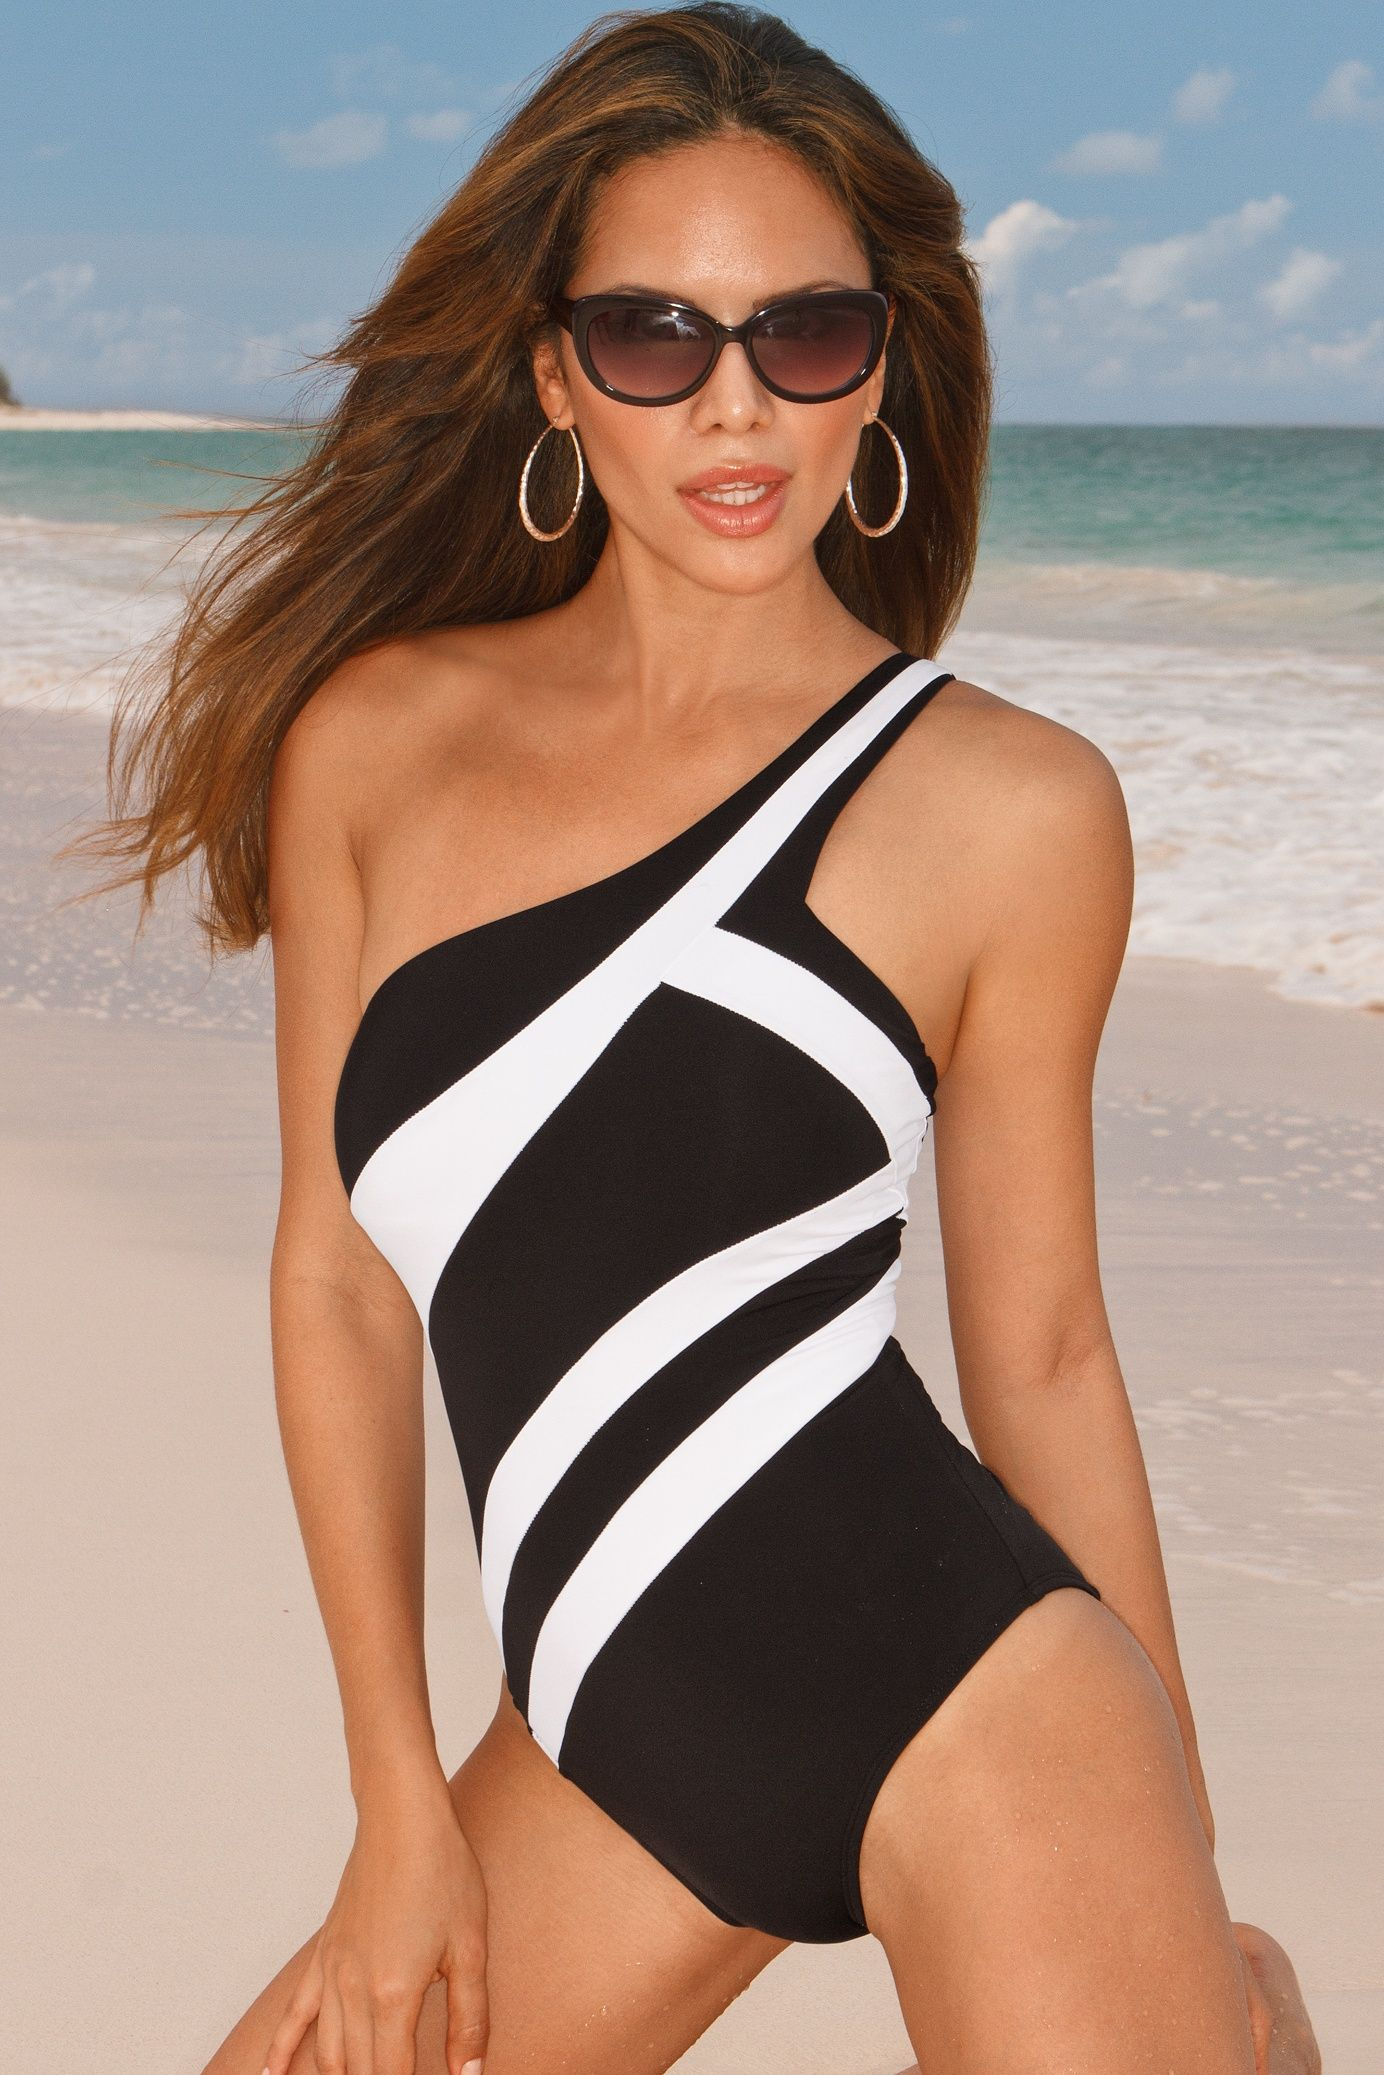 One-shoulder maillot | Swimsuit | Pinterest | Boston ...